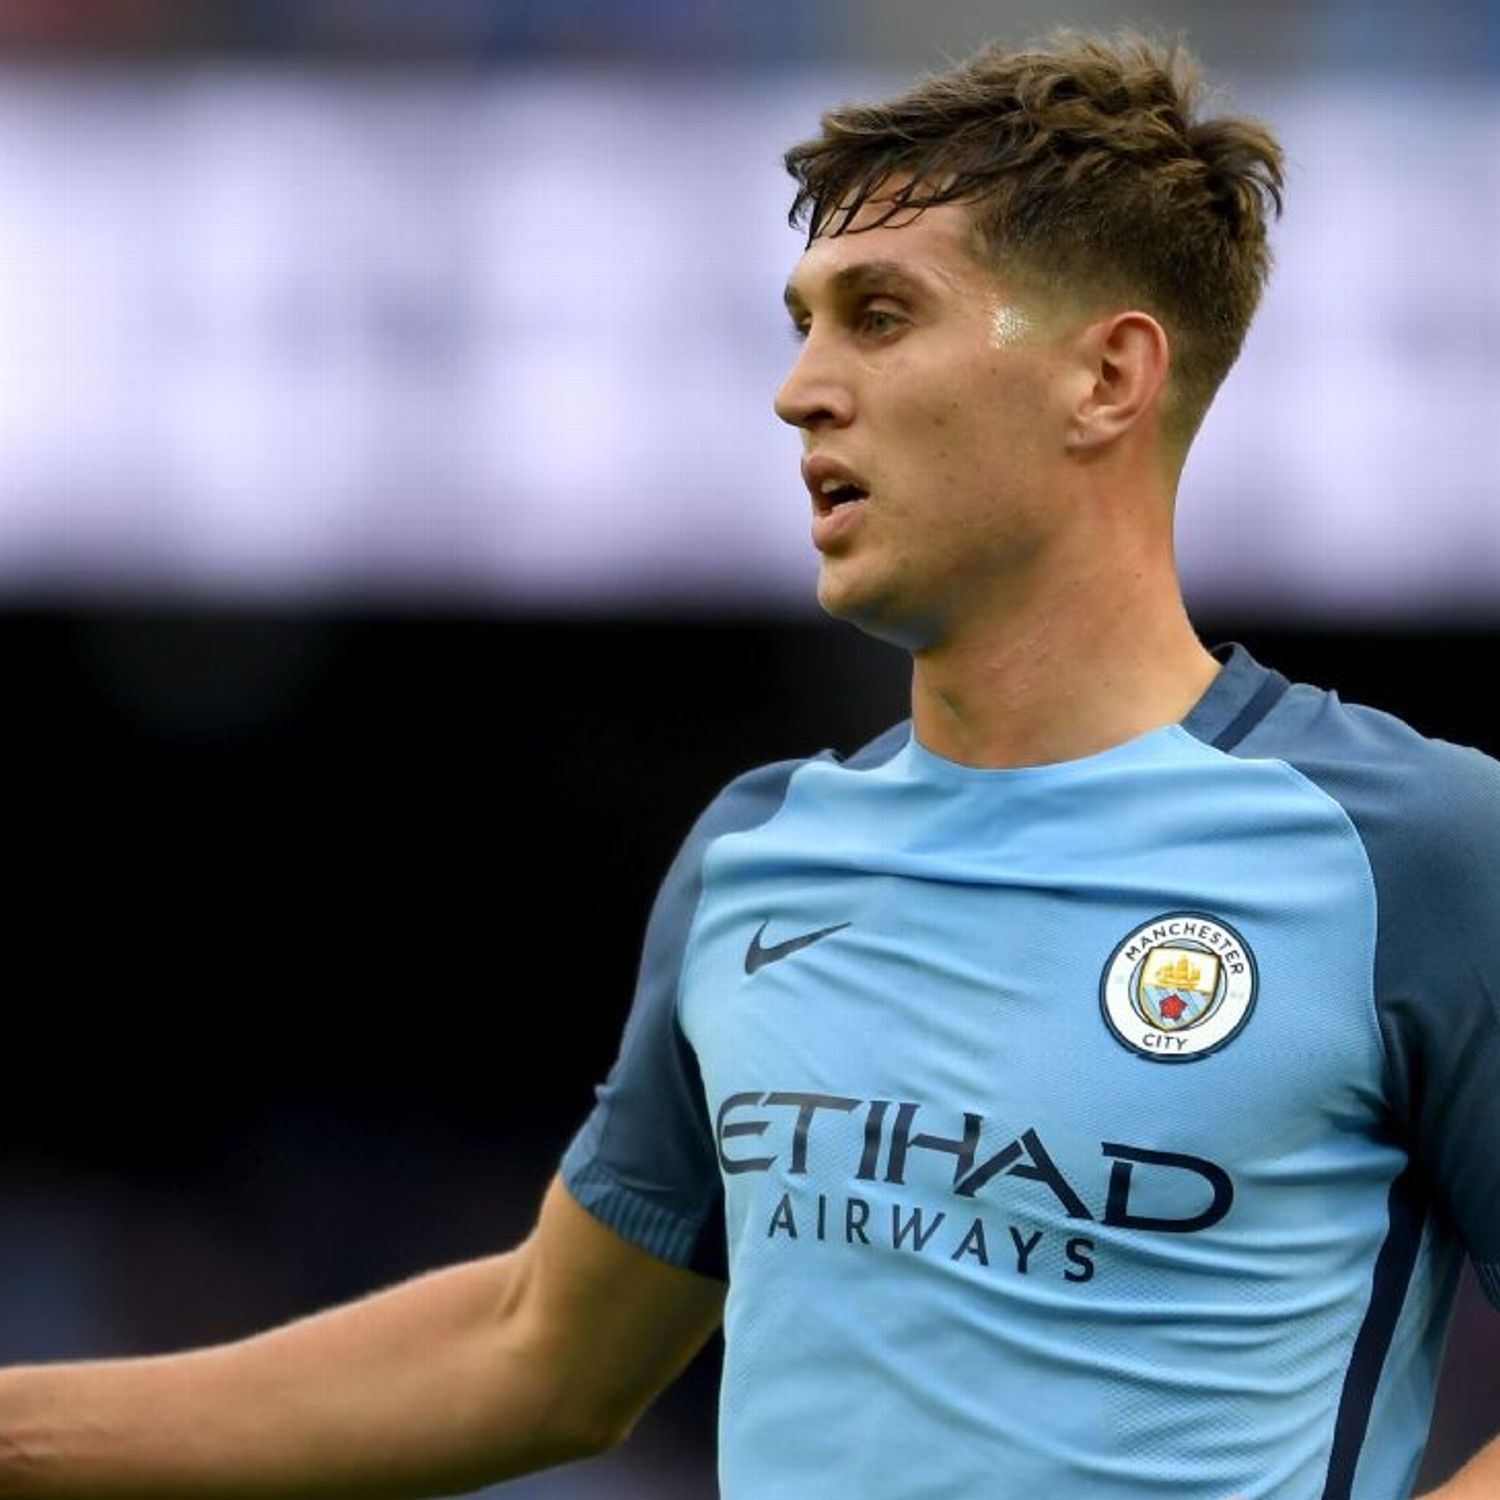 promo code c0777 cd615 John Stones has 'dream' to captain Manchester City and ...